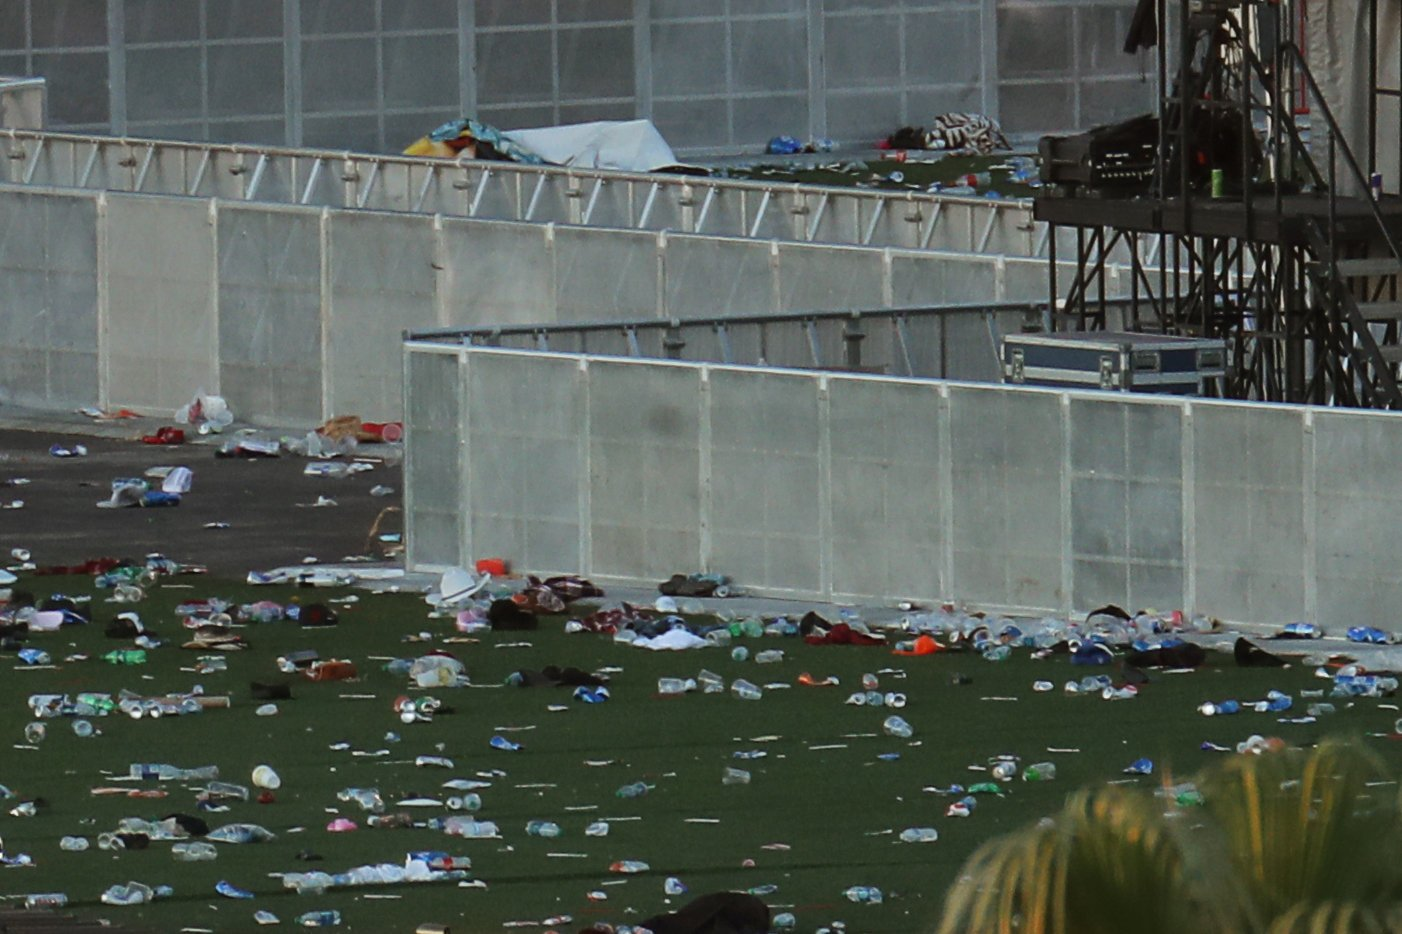 Personal belongings lay tossed aside on the fair grounds following the mass shooing at the Route 91 Harvest Country Music Festival on the Las Vegas Strip in Las Vegas, Nevada